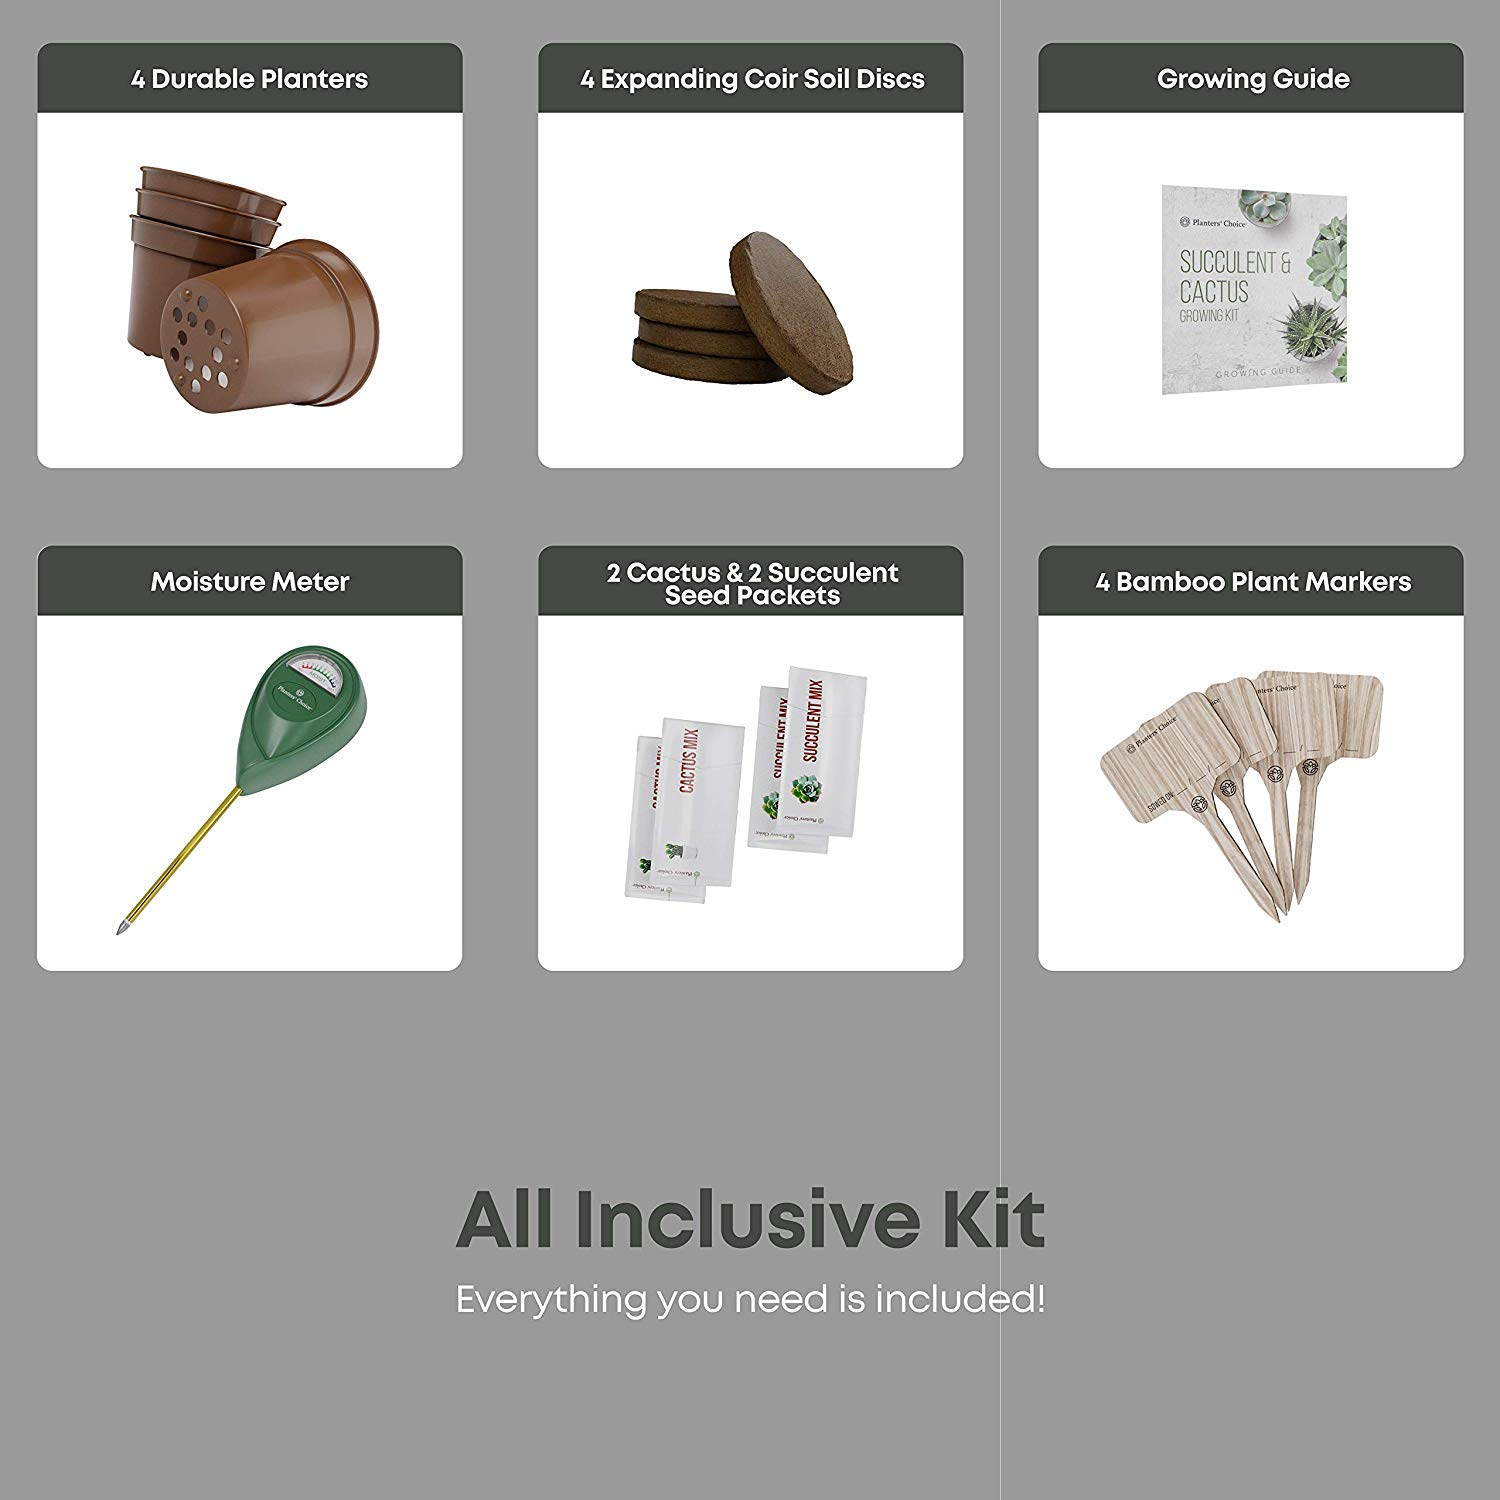 Succulent & Cactus Growing Kit with Moisture Meter - Grow 4 Plants - Includes Everything Needed to Grow Successfully - Great Gift (Cactus & Succulent) by Planters' Choice (Image #3)